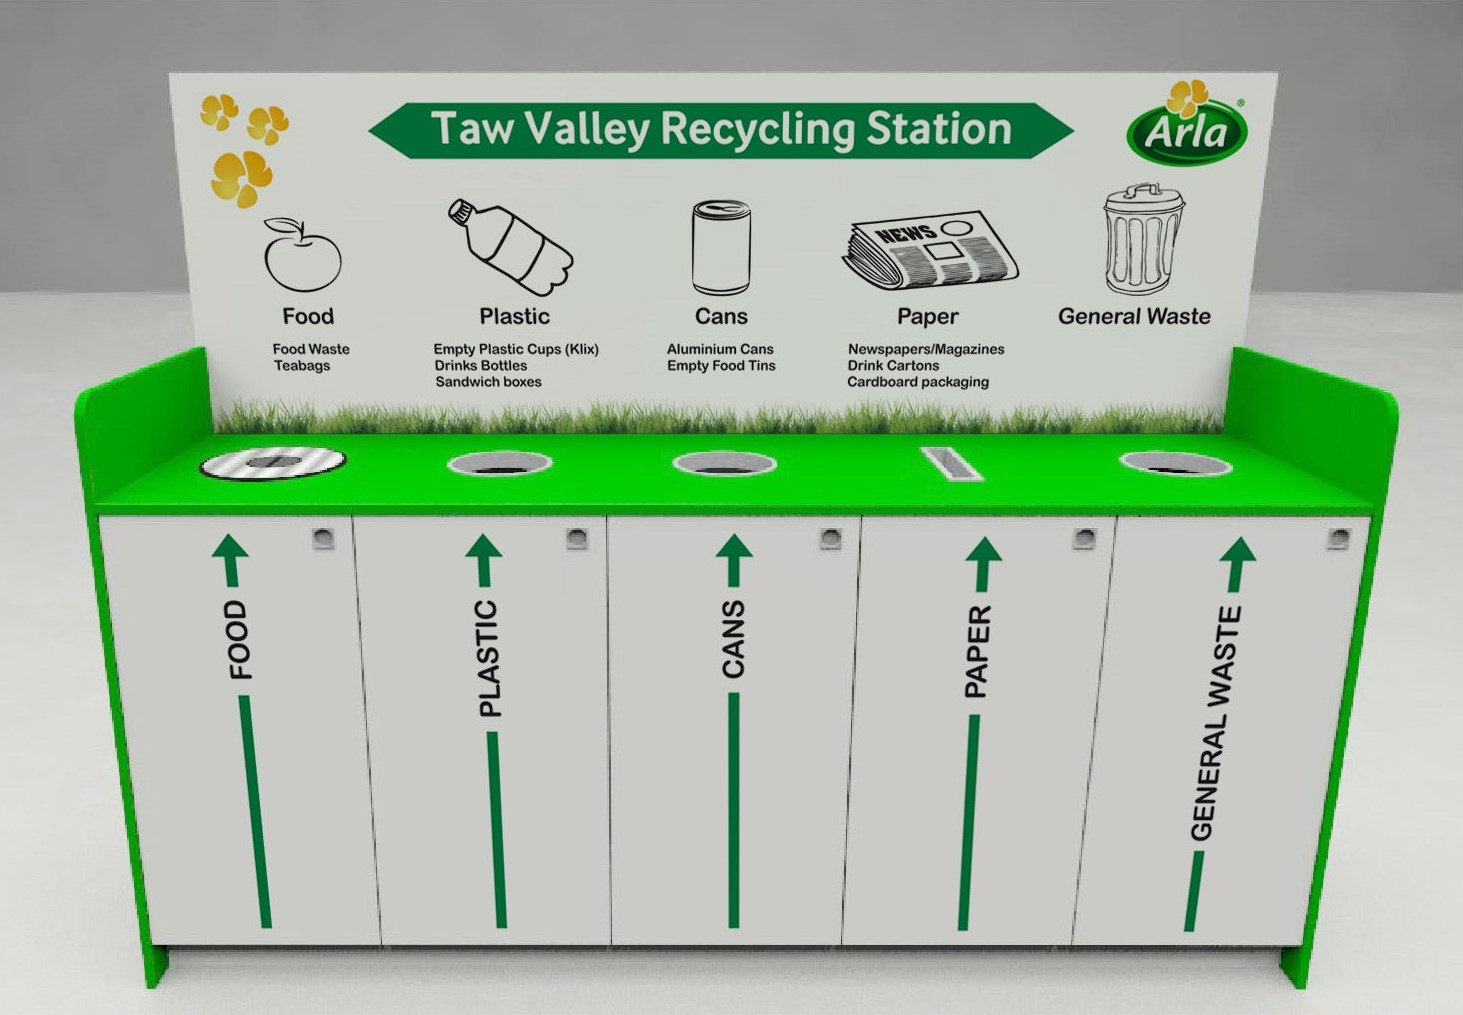 Arla Recycling Station